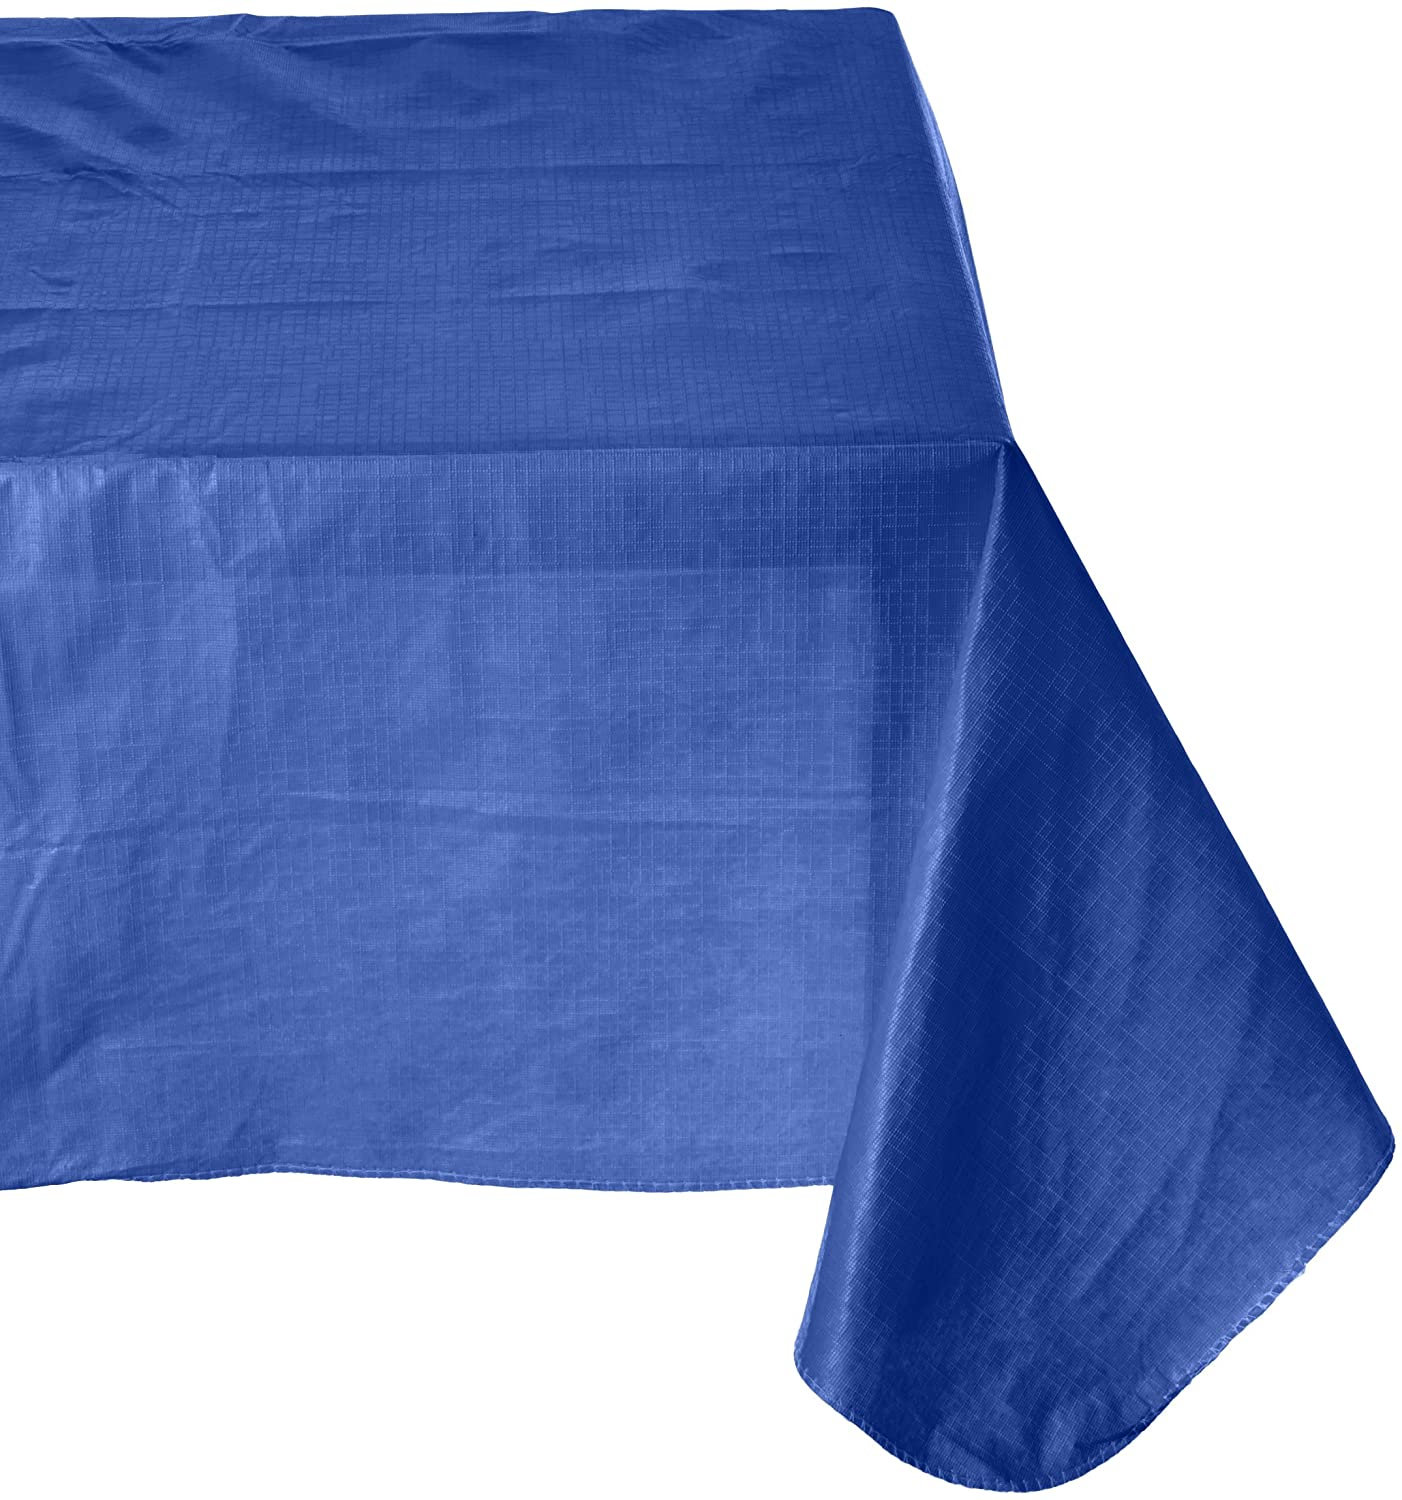 Amscan Durable Indoor Outdoor Flannel Backed in Solid Color Royal Blue Vinyl 52 x 90 Others Party Supplies 6 Piece